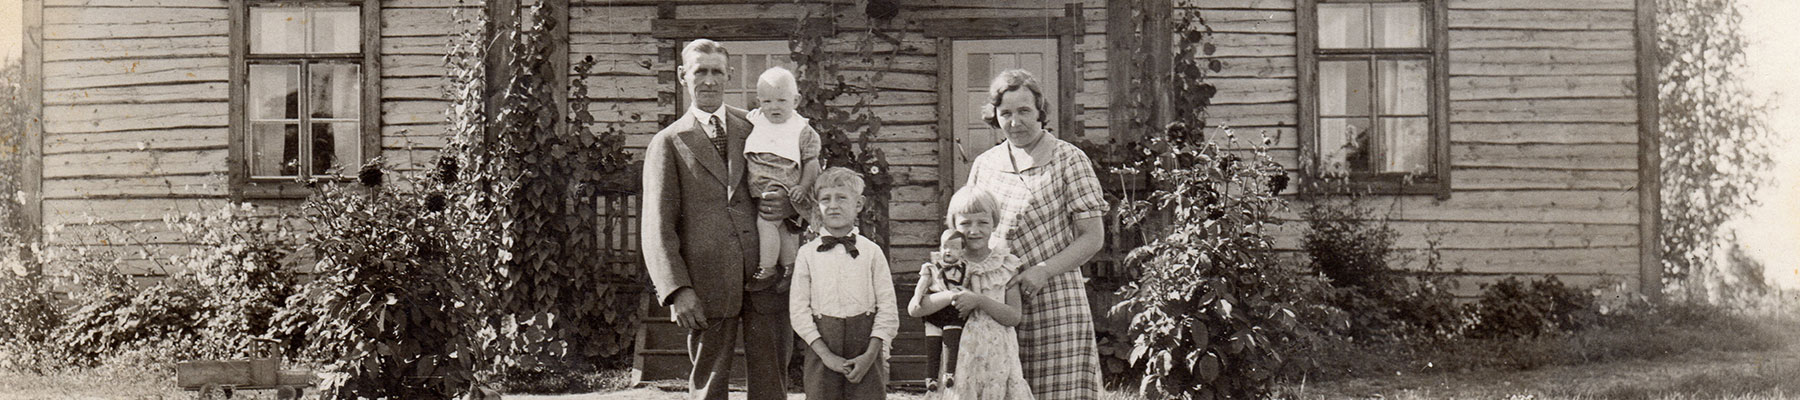 Kulkea Our Roots - Vintage Picture of the Finnish Family